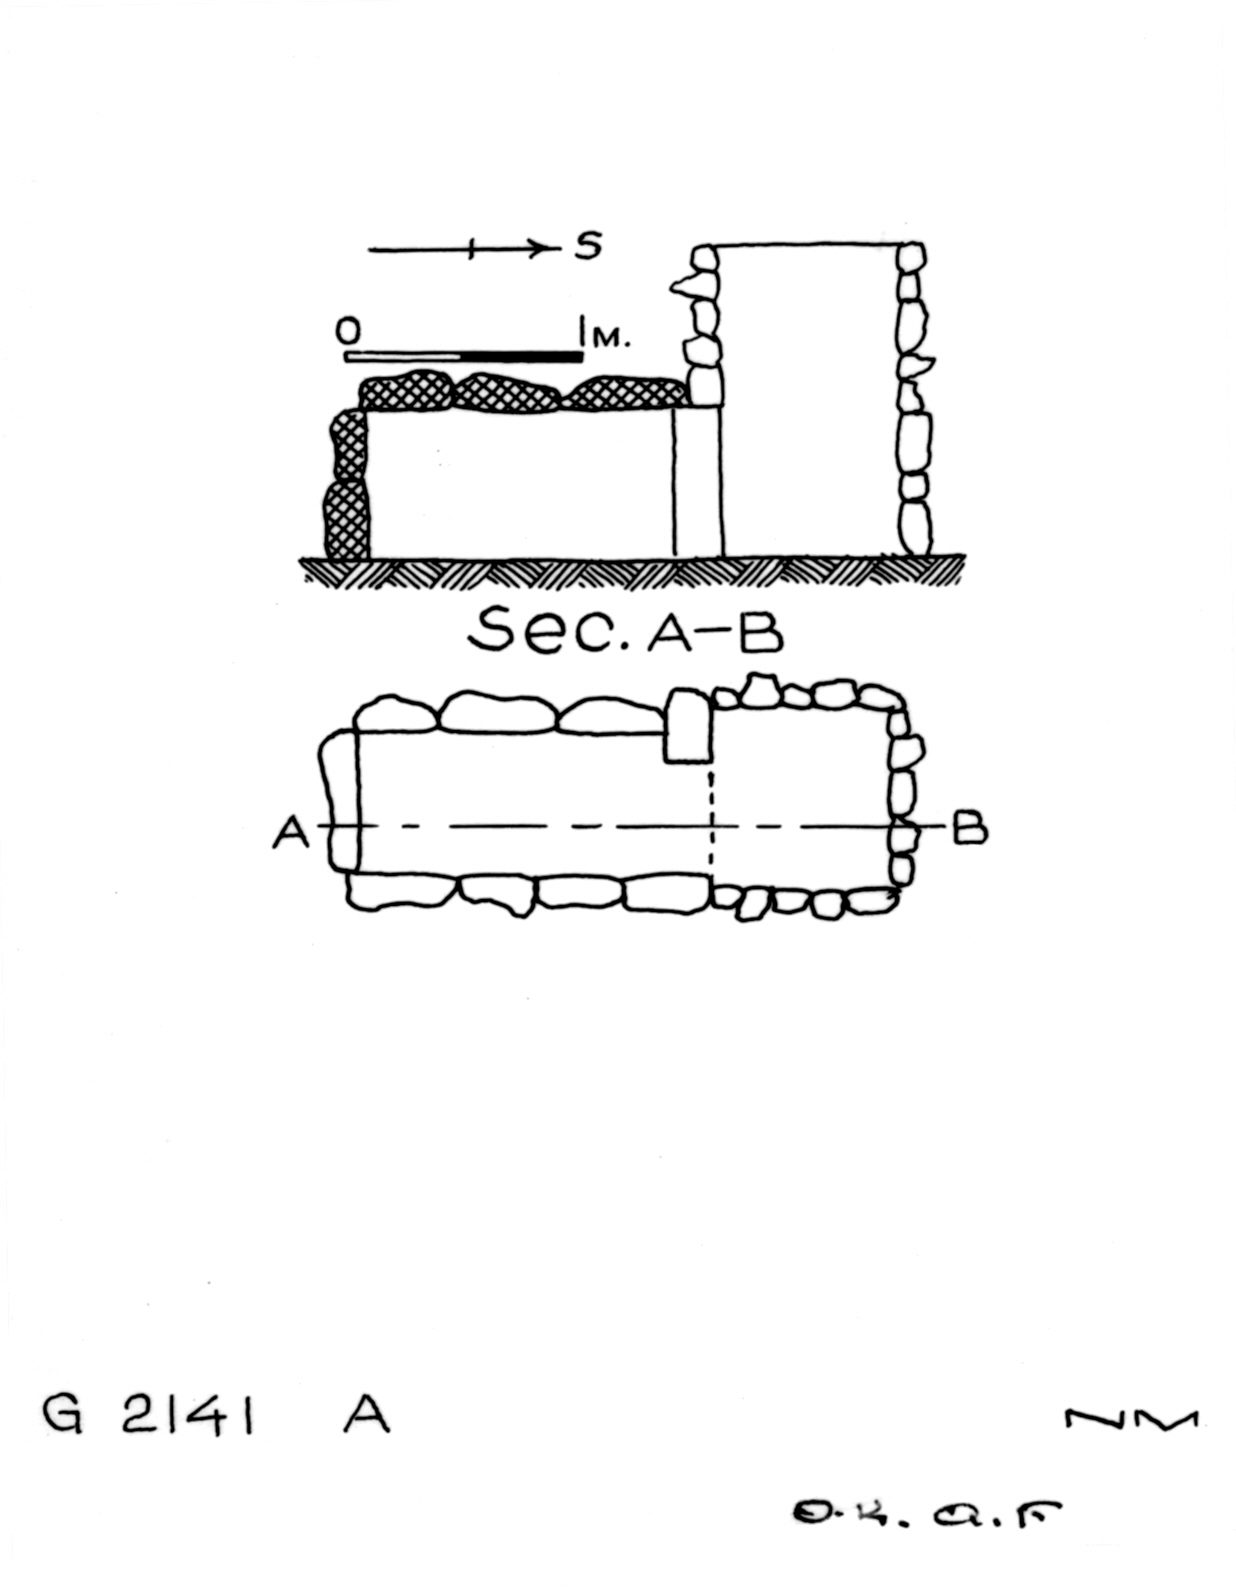 Maps and plans: G 2141, Shaft A